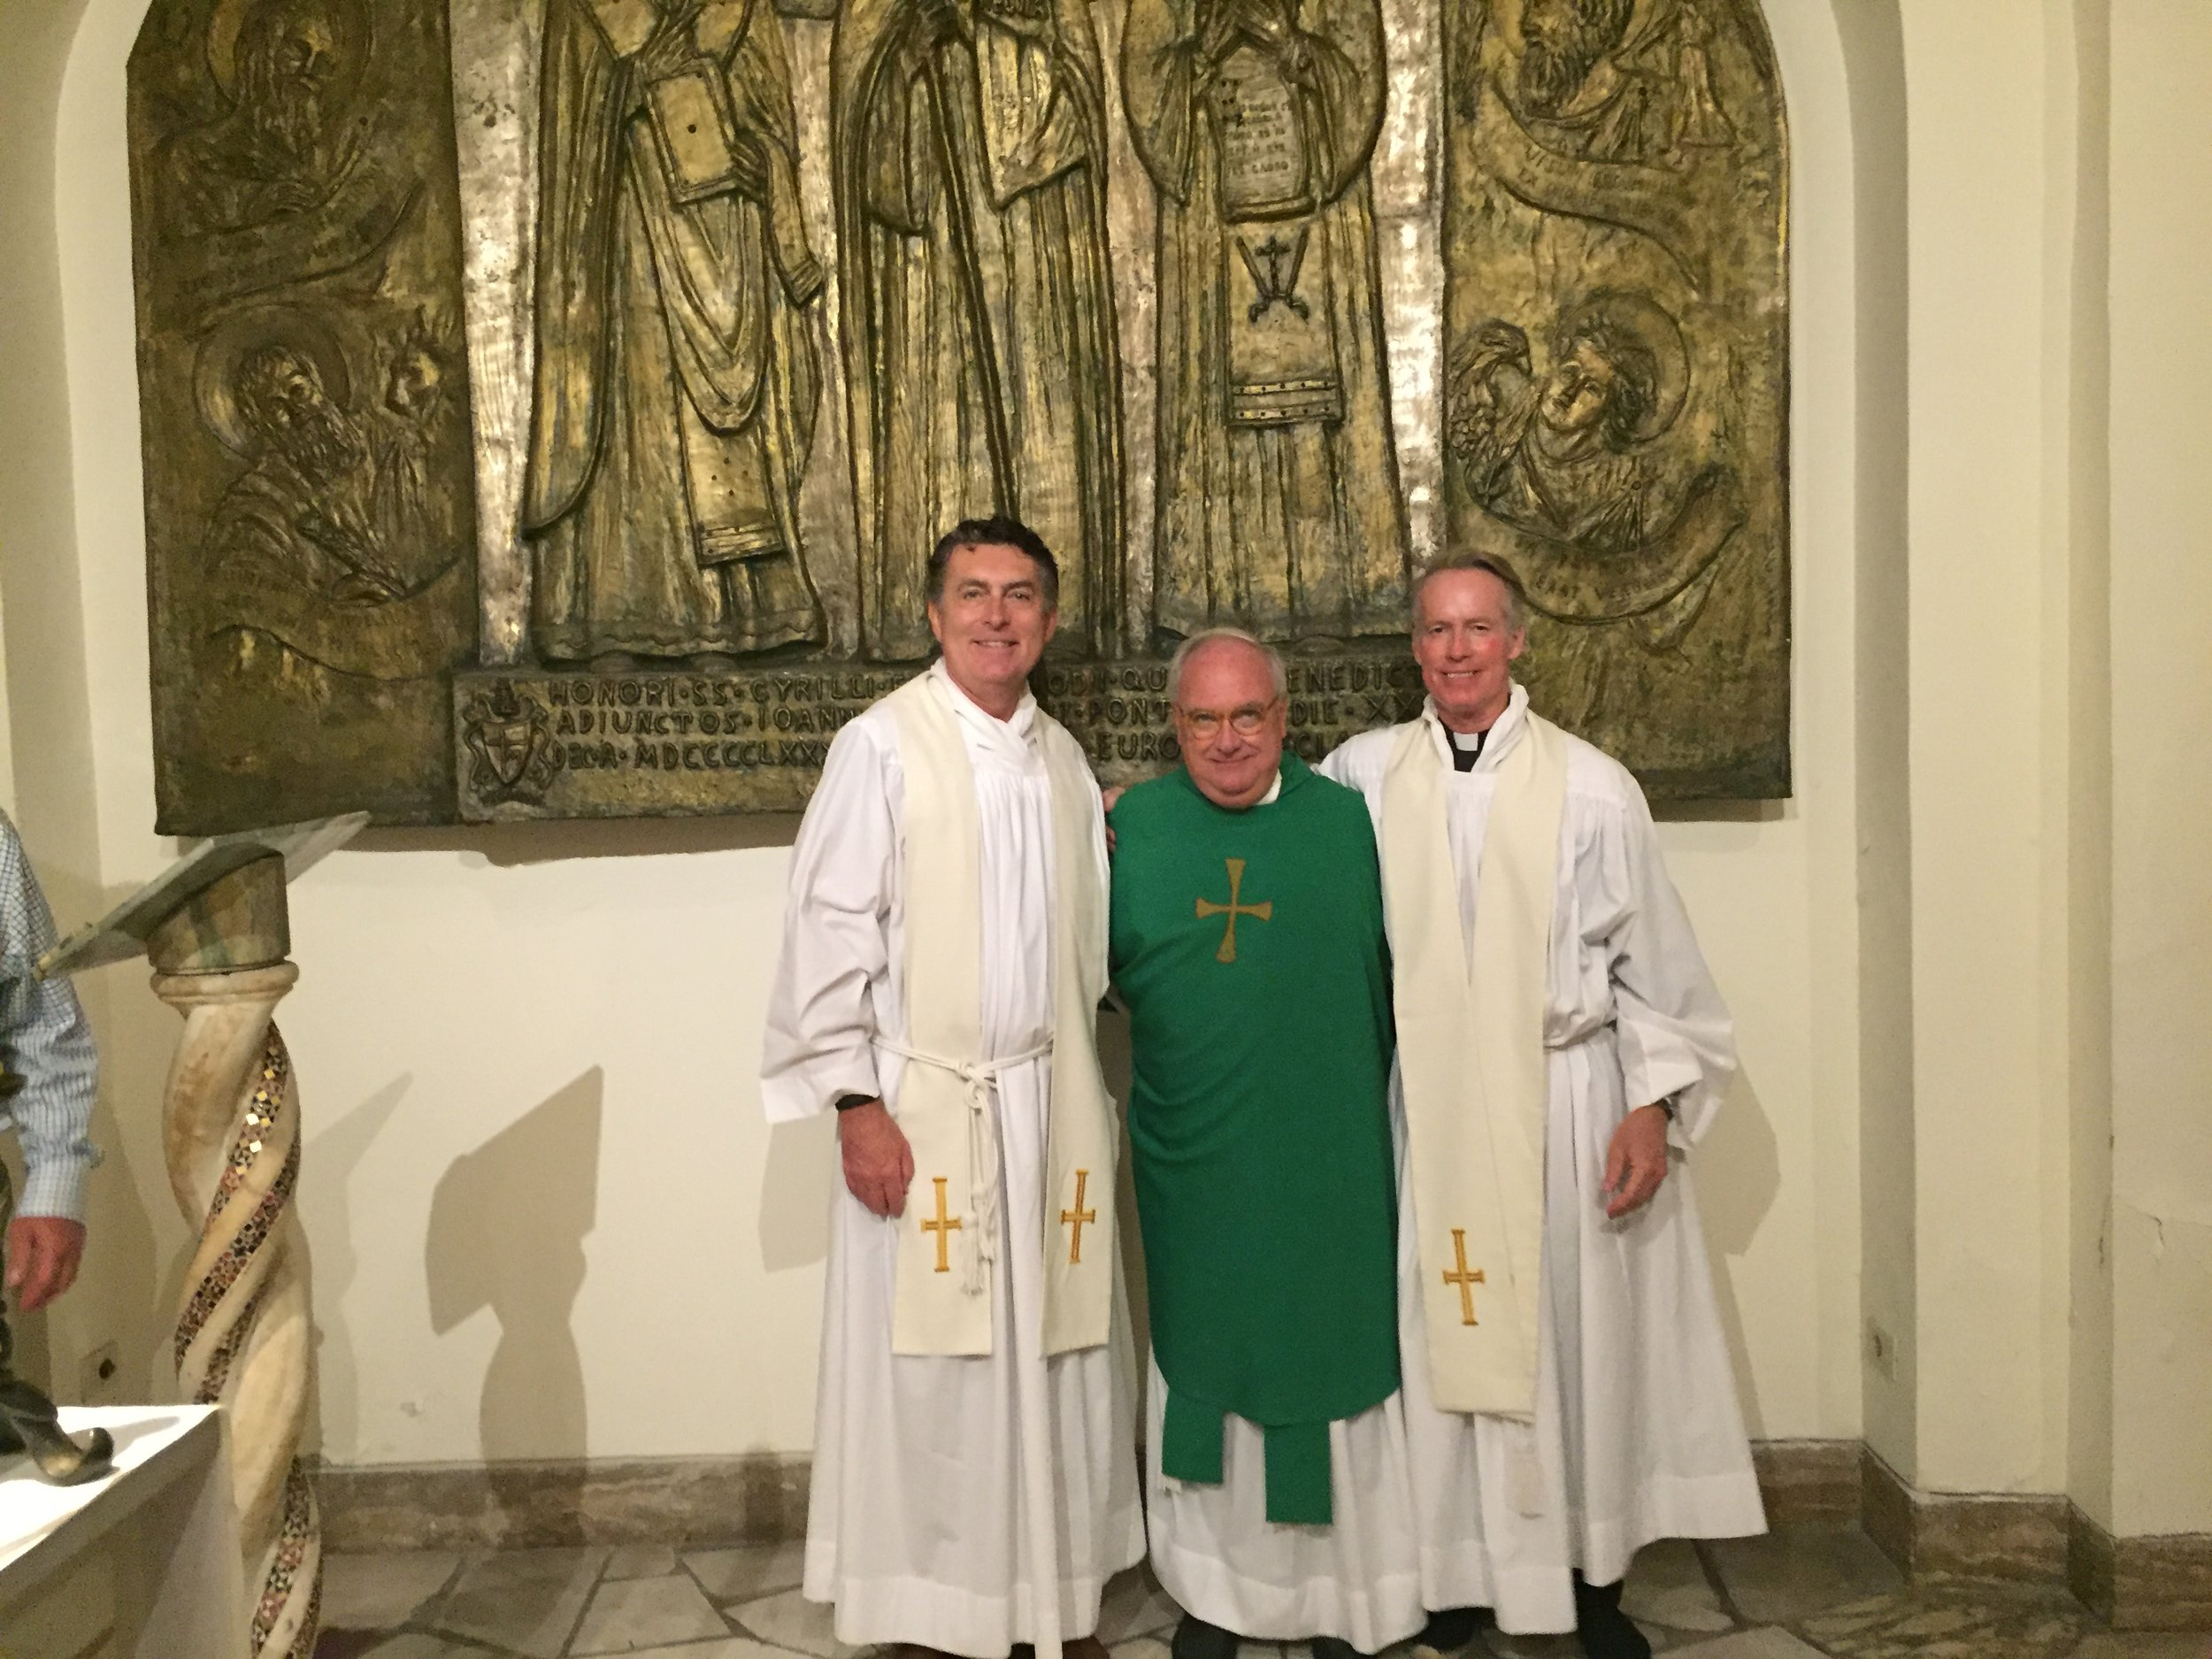 (L-R):Rev. Brian F. Linnane, S.J., president of Loyola University Maryland, Rev. Timothy Brown, S.J., special assistant to the president for mission integration &Rev. Jack Dennis, S.J., Loyola Trustee,celebrated Mass at the Vatican on the 30th anniversary of their ordinations in June 2016 (photo courtesy of Loyola University Maryland)